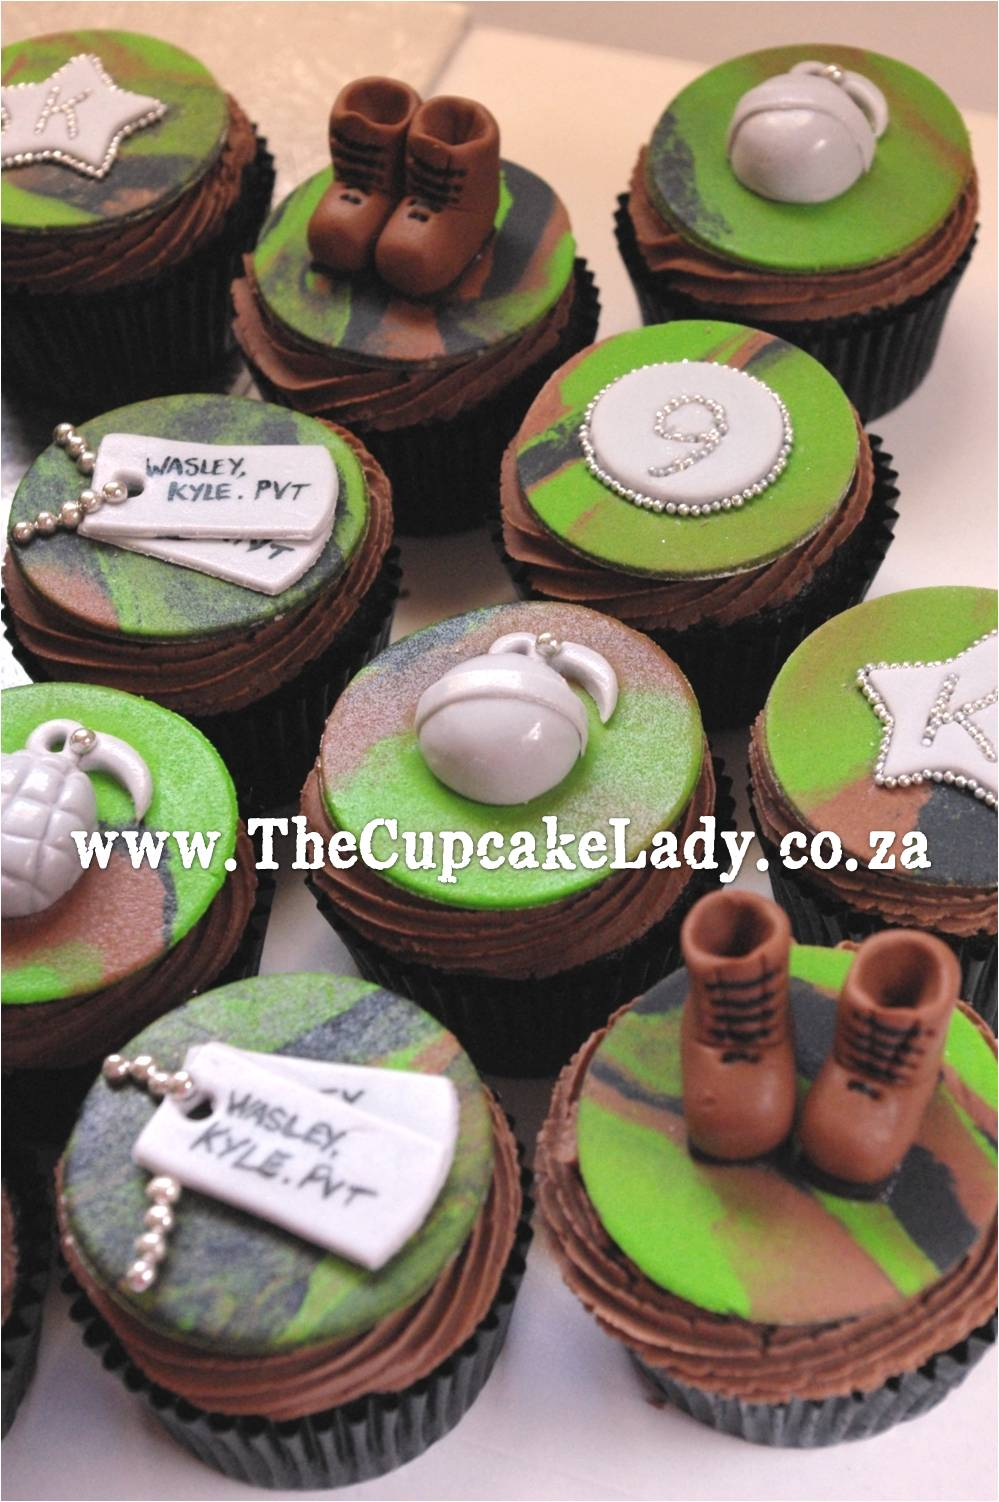 army theme cupcakes, handmade sugarpaste decorations, army boots, dog-tags, grenades, camouflage